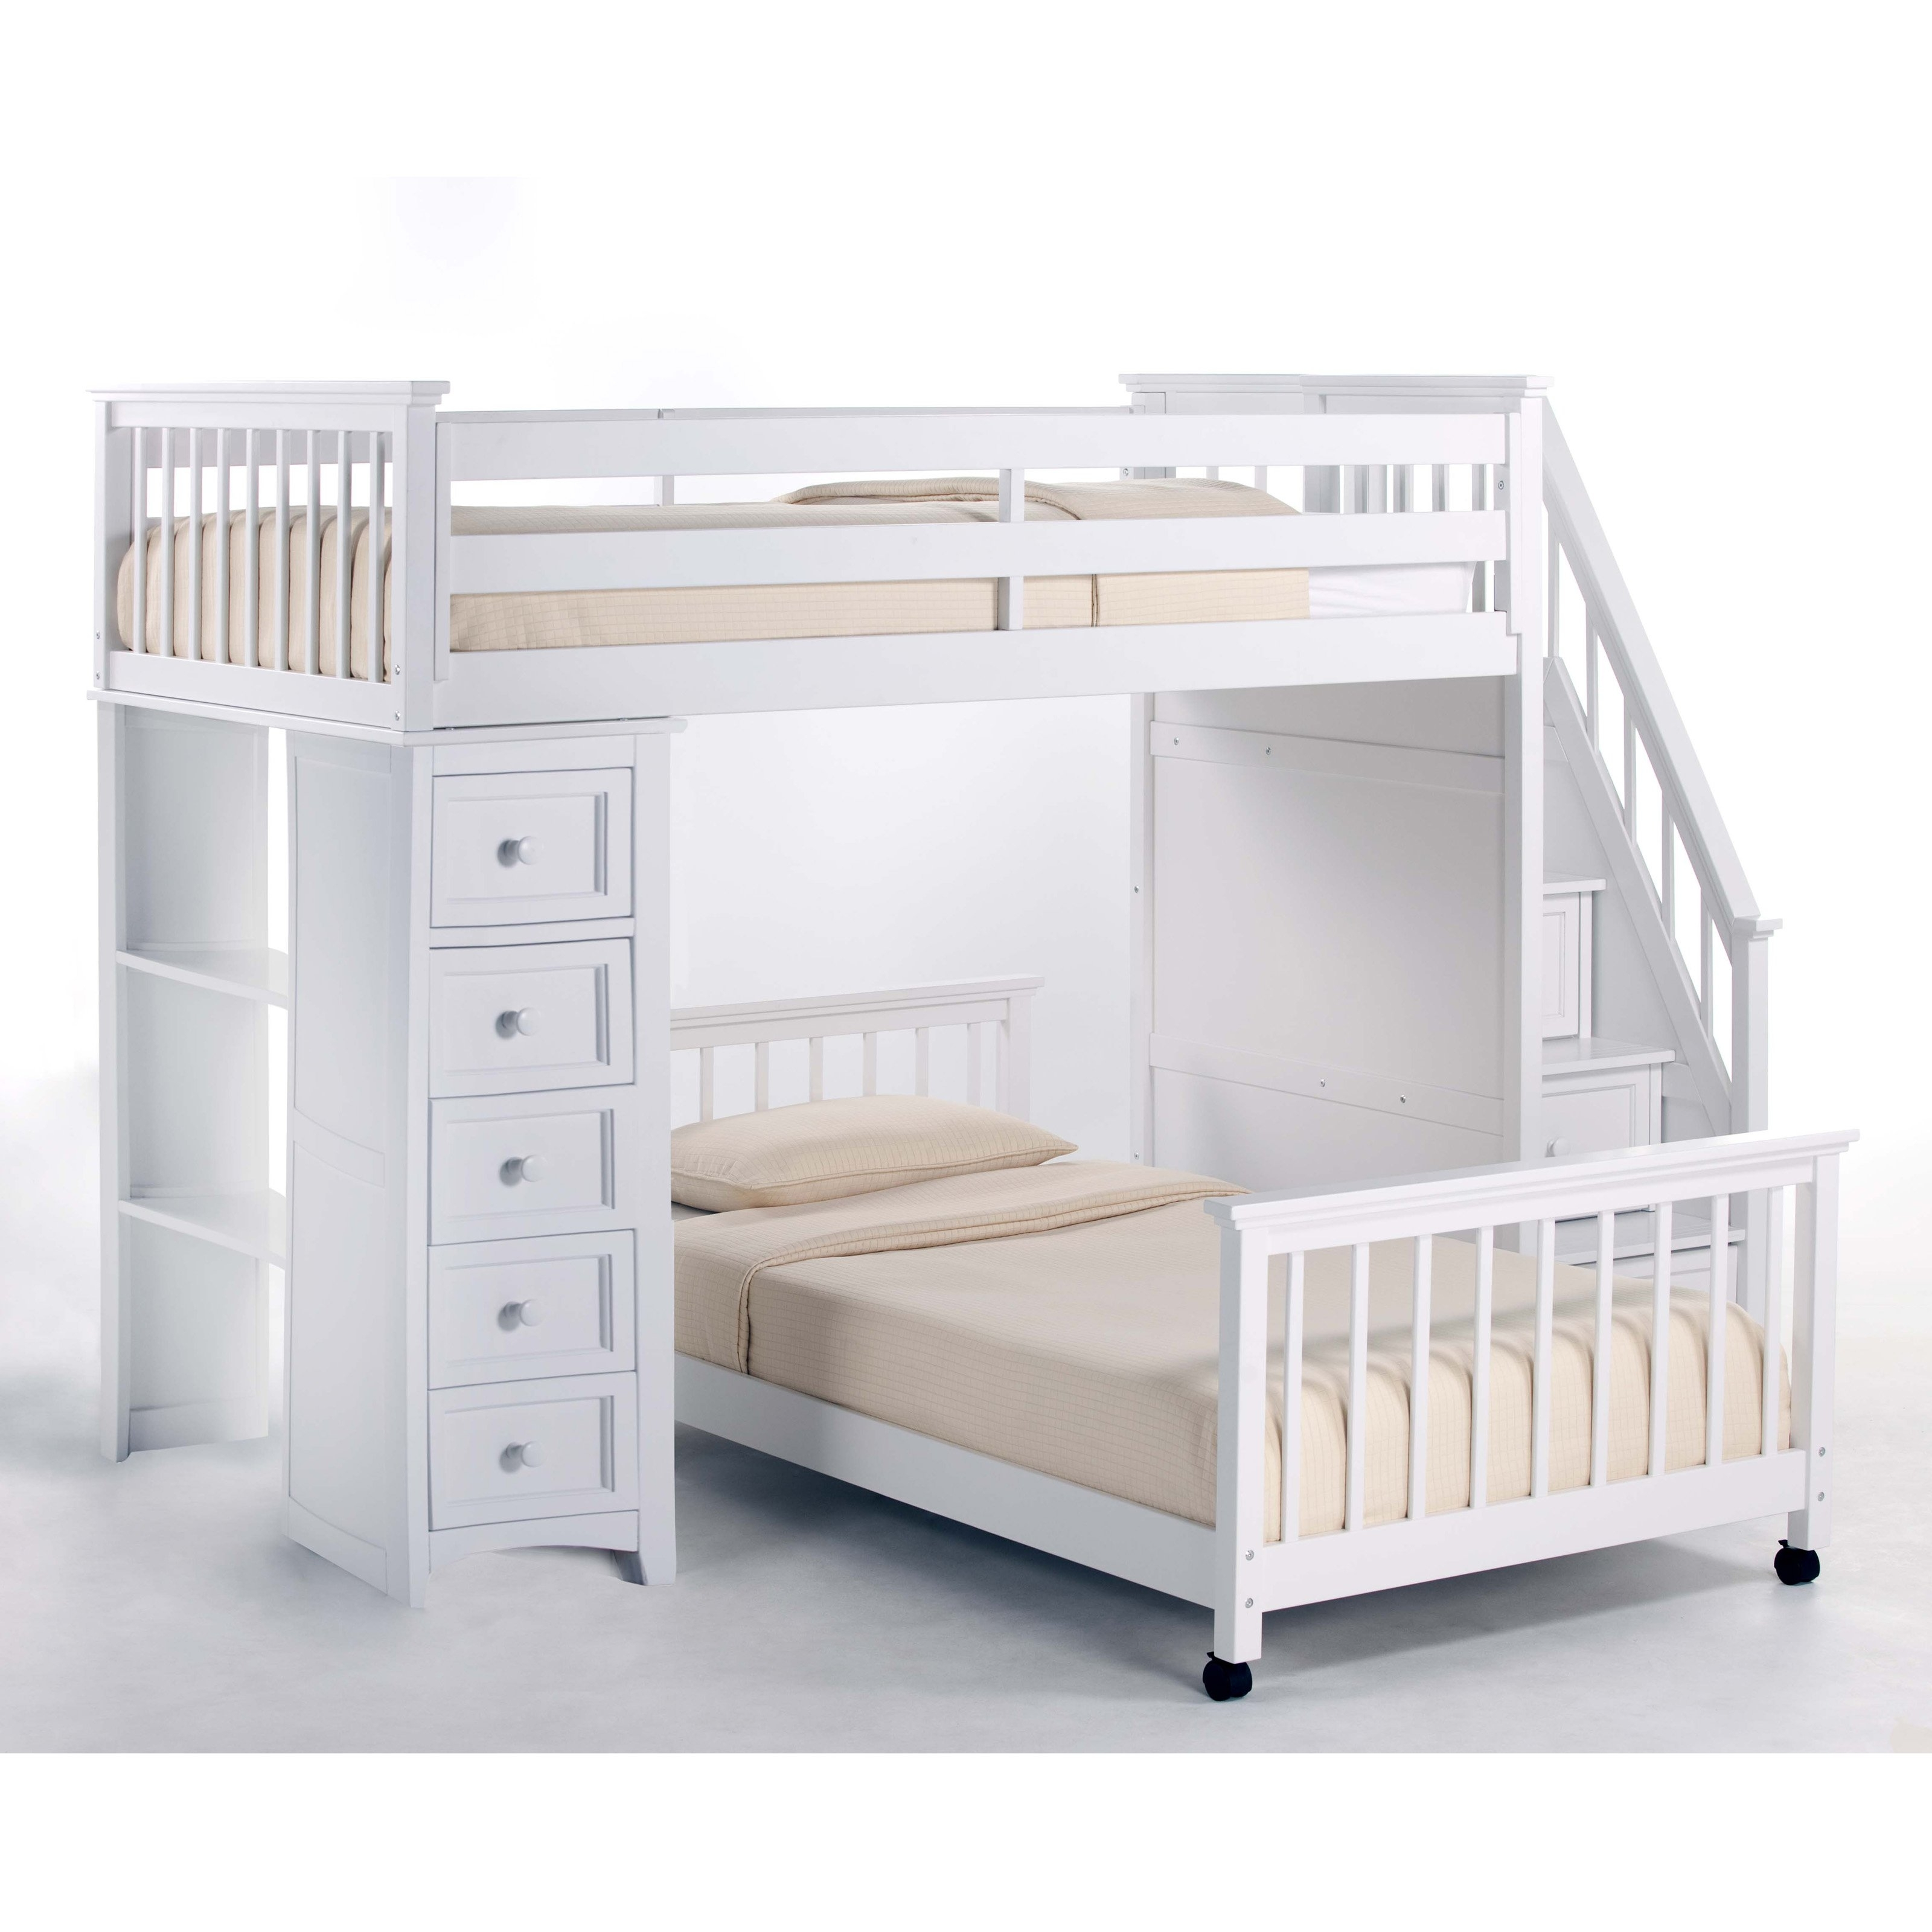 Marvellous Canwood Loft Bed Inspirations | Impressive Canwood Whistler Storage Loft Bed with Desk Bundle White